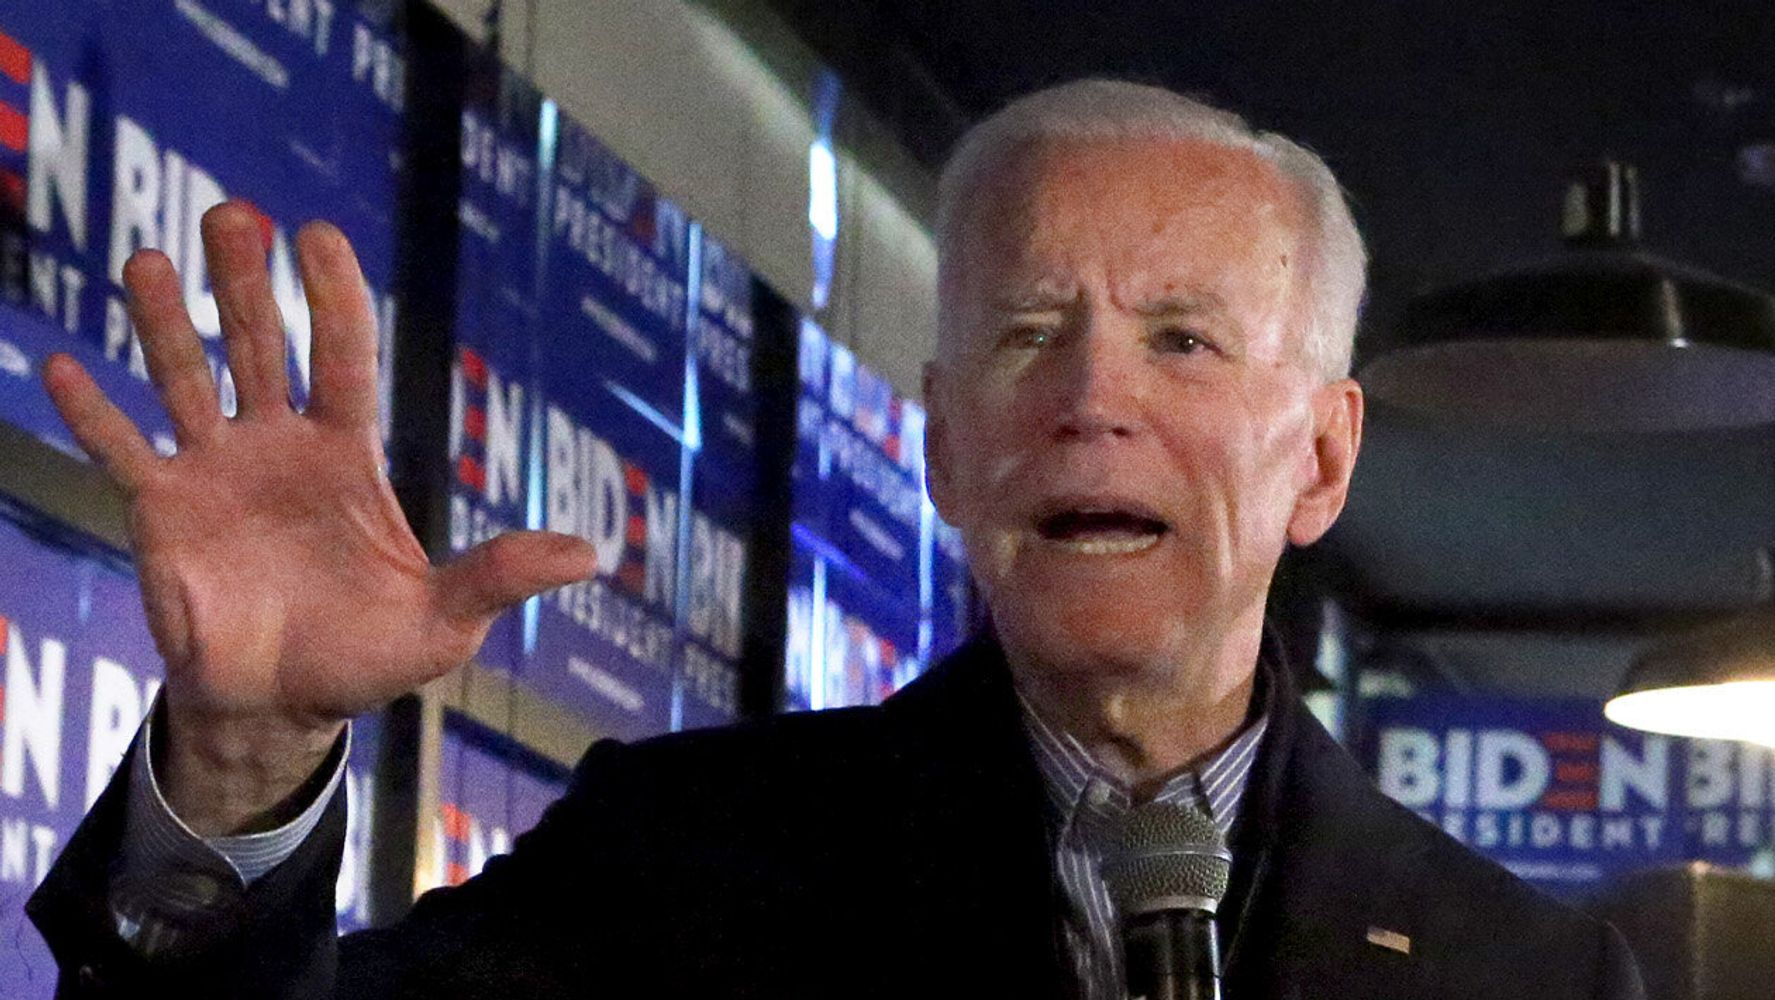 Westlake Legal Group 5e40dcce2100002e00838204 Lying Dog-Faced What??? Biden Mystifies With Bonkers Joke Insult At Voter